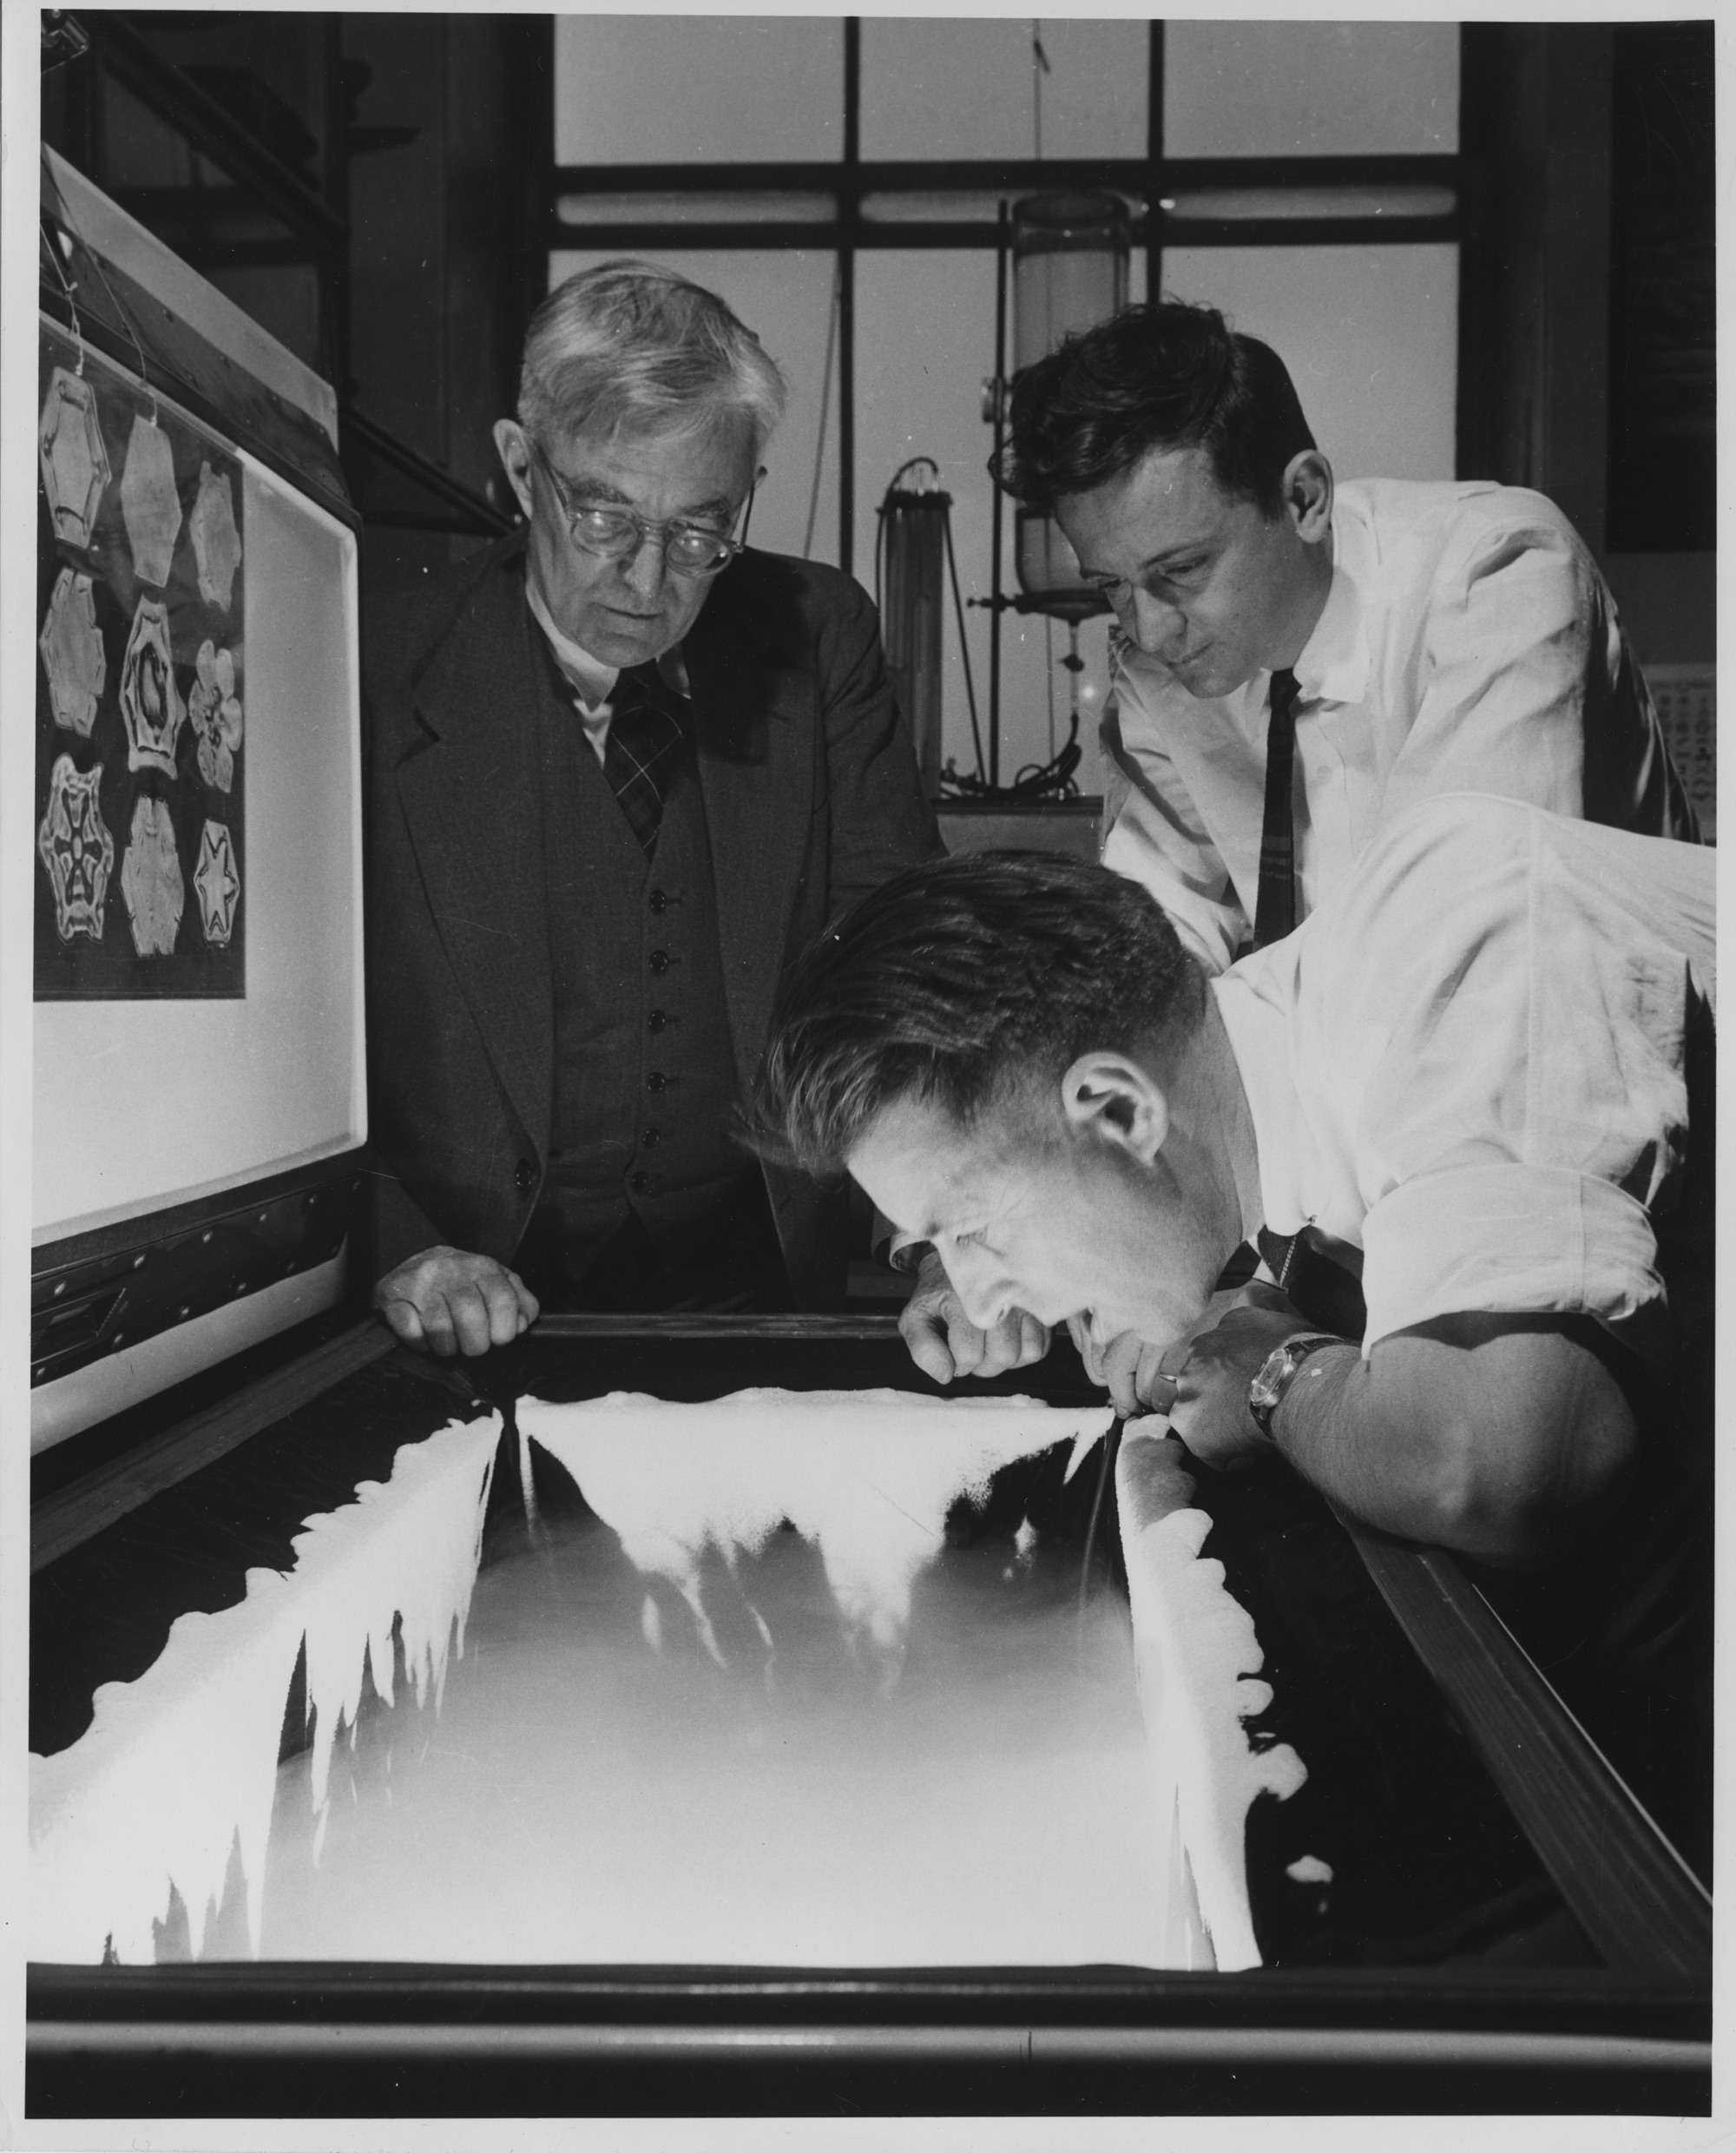 GE scientist Vincent Schaefer breathes a cloud into a freezer, as colleagues Irving Langmuir and Bernard Vonnegut (Kurt Vonnegut's brother, at center) look on. He'll nucleate this laboratory-made cloud with dry ice to create snow. Photo by GE News Bureau